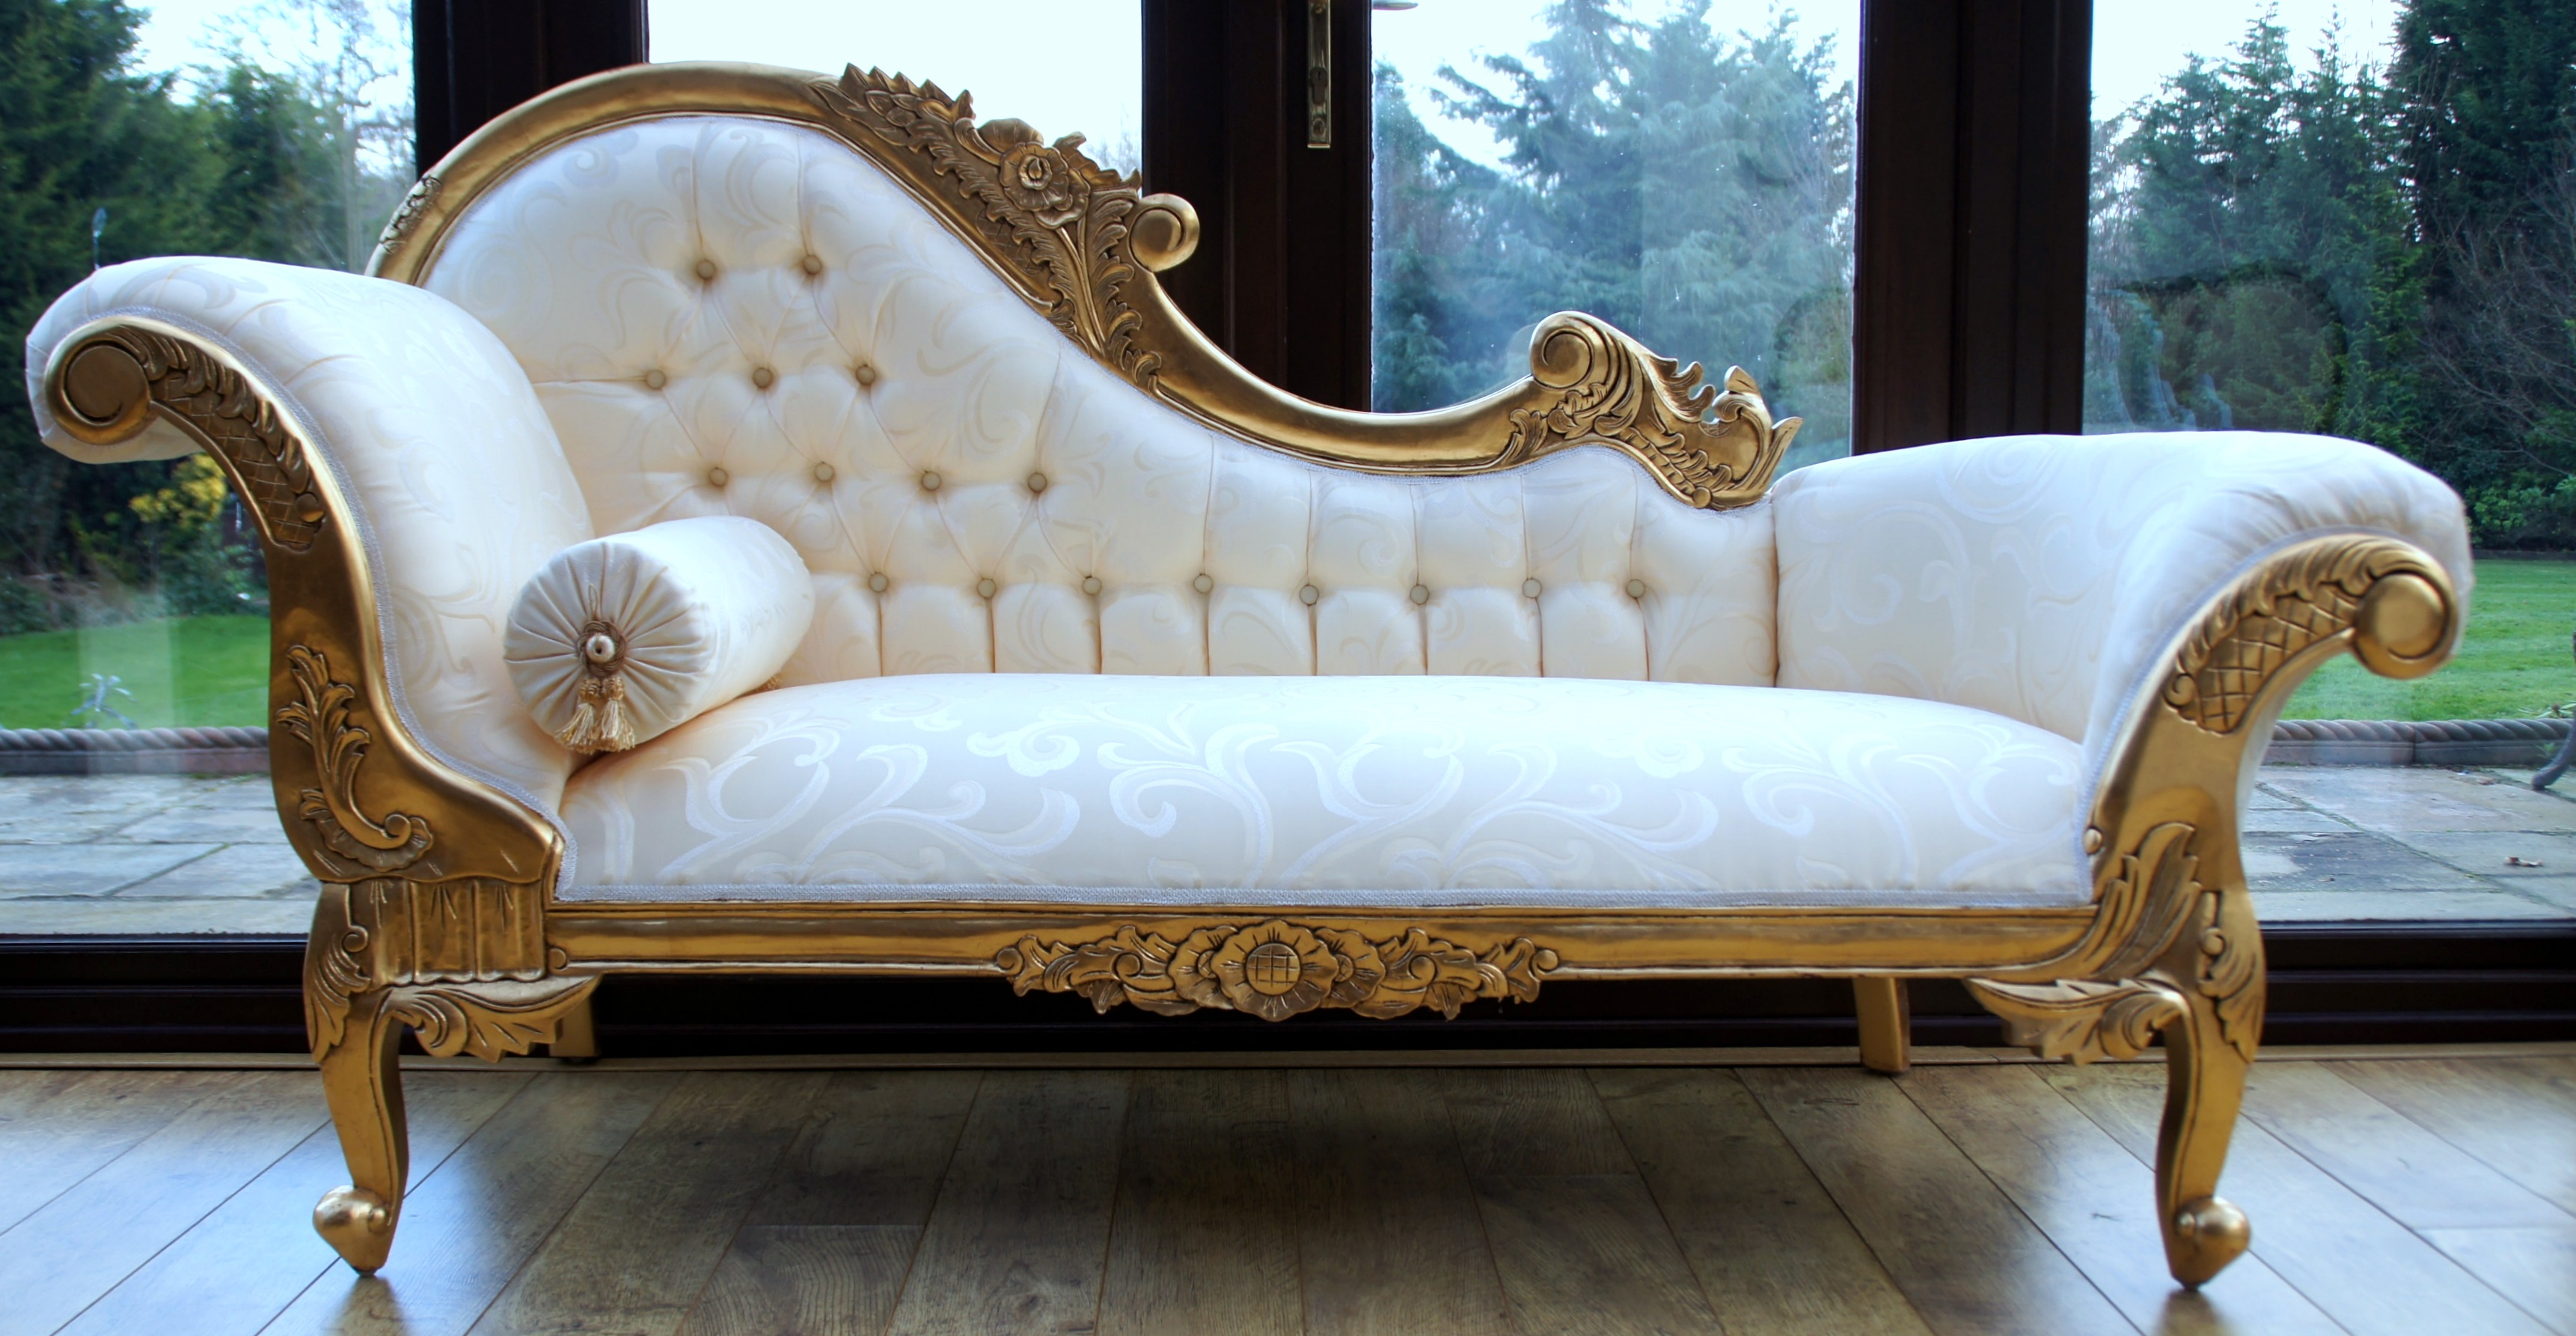 Gilded gold furniture apartments i like blog for Chaise longue lounge